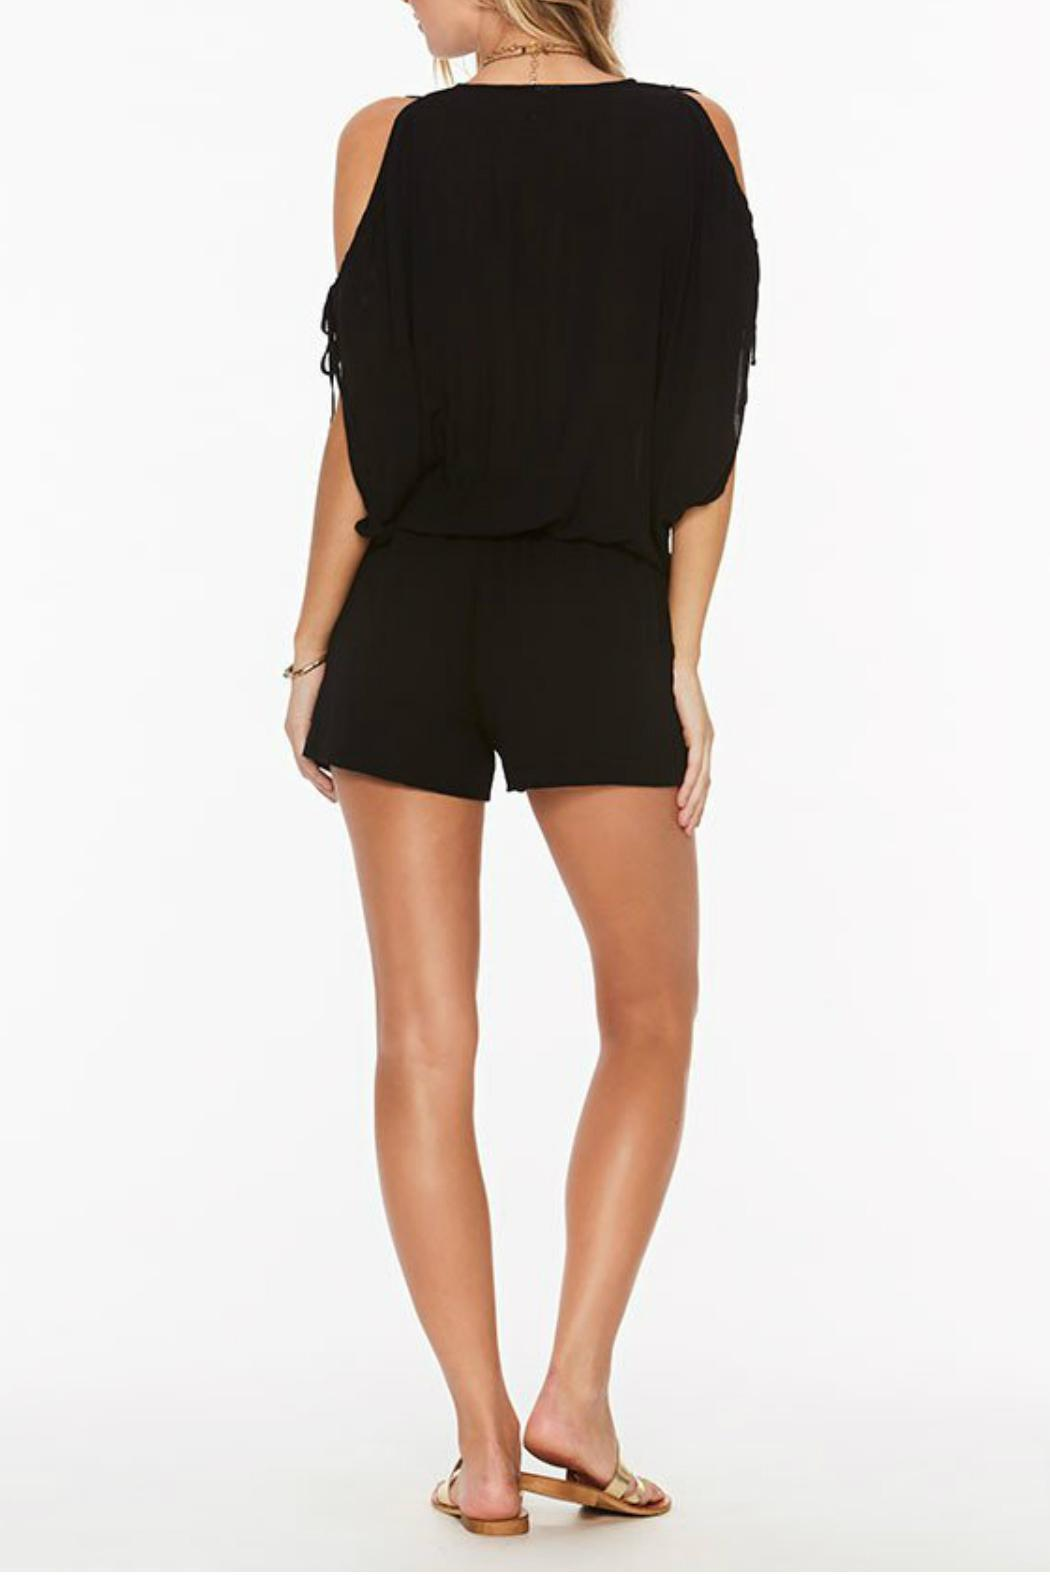 L SPACE Daylight Romper - Side Cropped Image